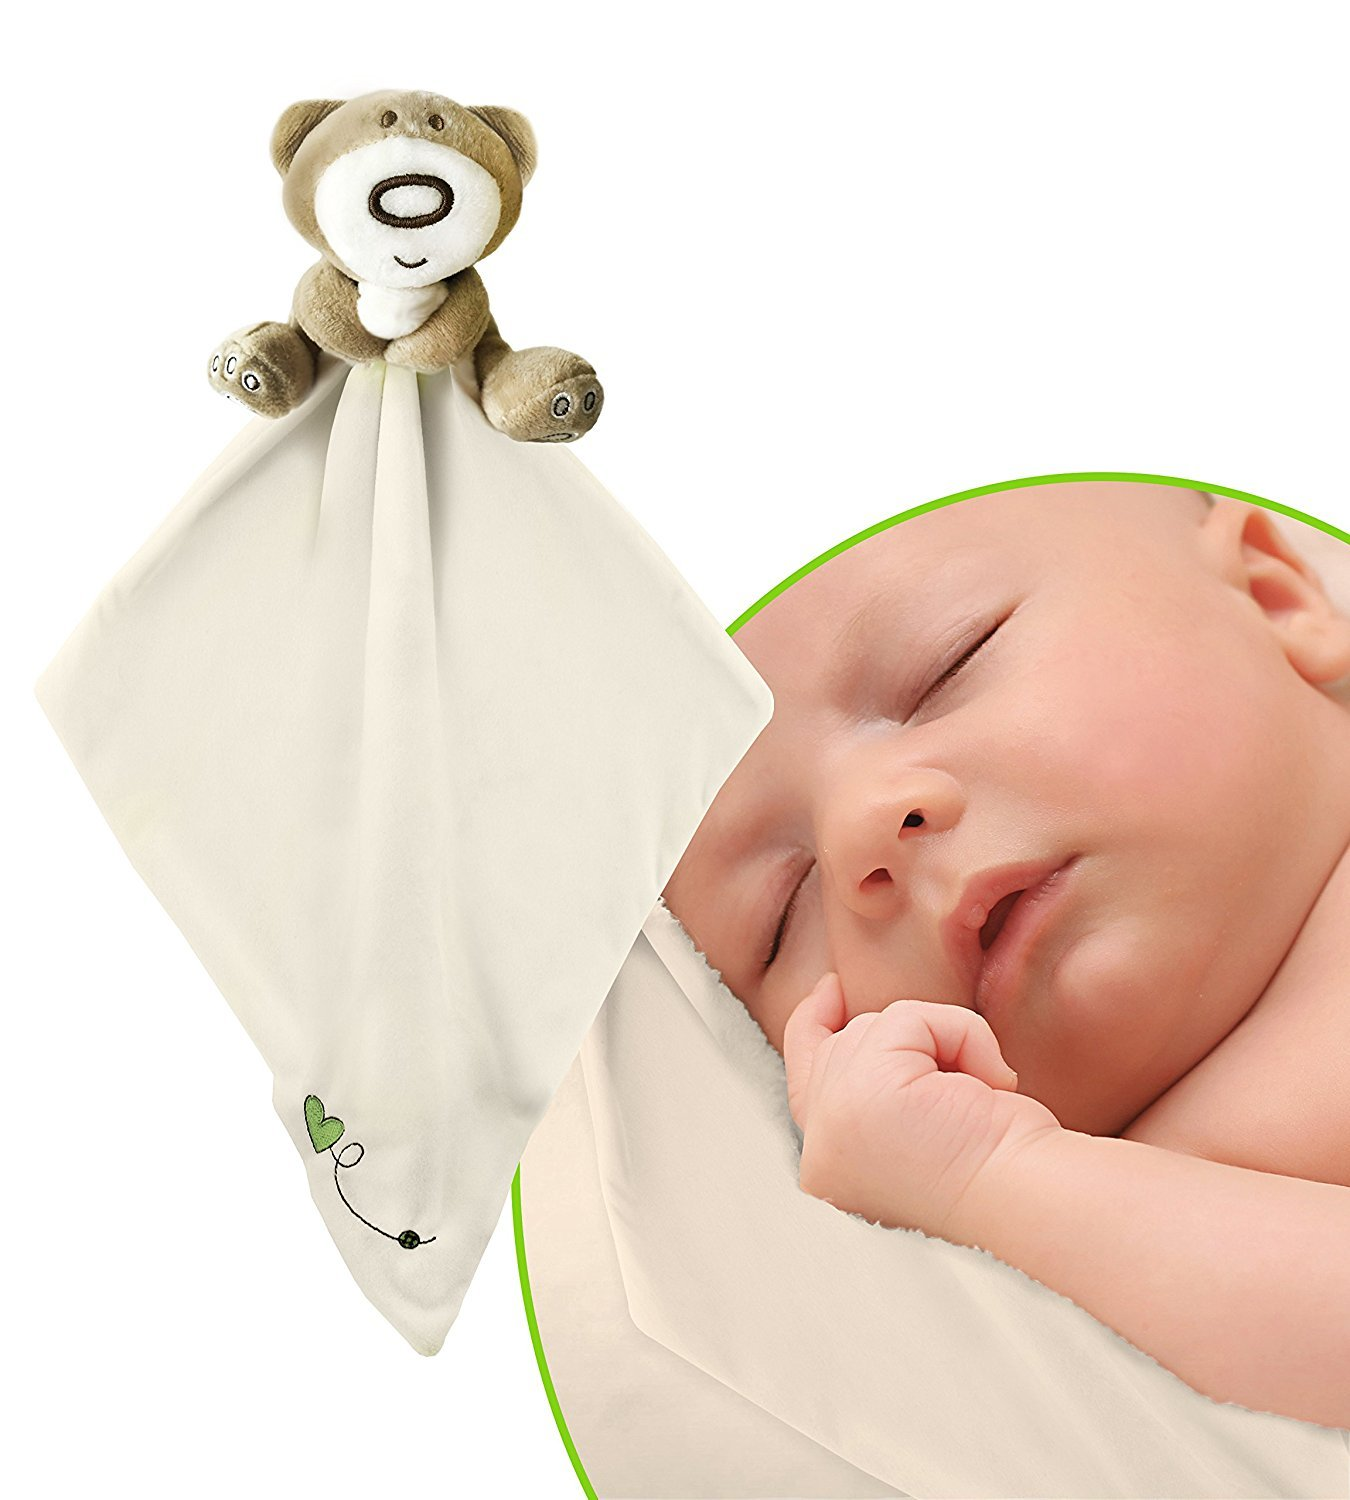 Teddy Bear Snuggle Blankie. Plush Infant Security Blanket for Boys and Girls with Adorable Teddy Bear. Soothing and Fun, Light Yellow Color Animal Blankie. Safe For Children Material, Fully Certified